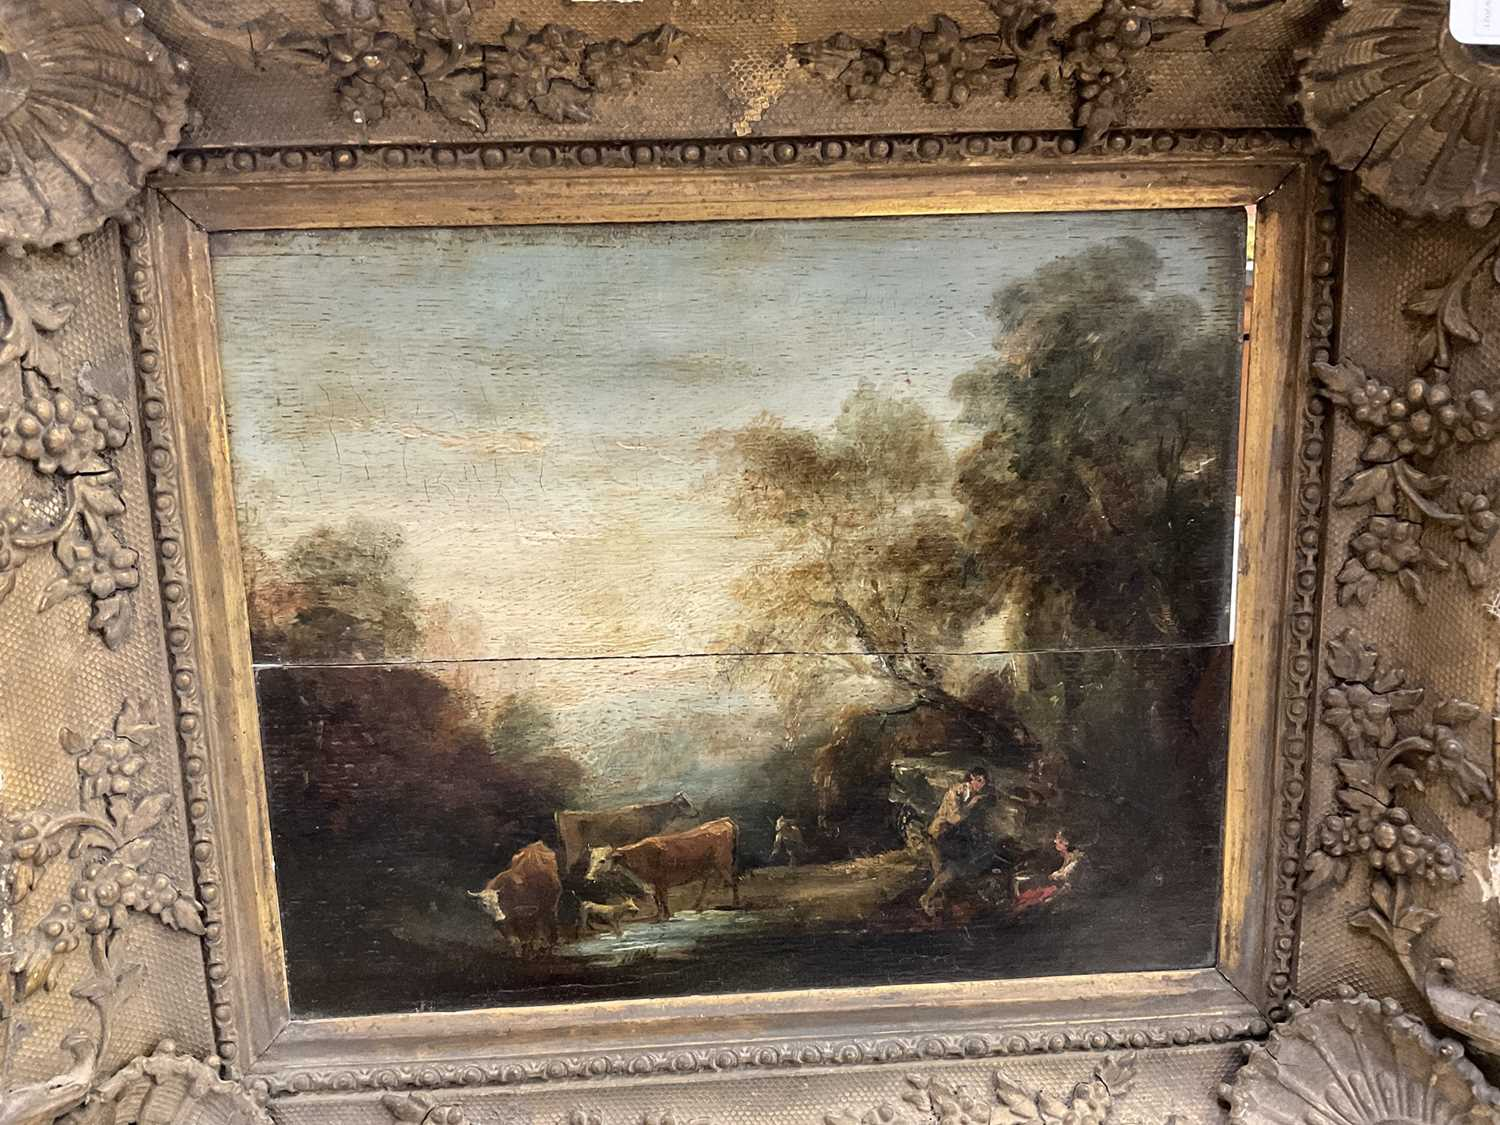 Manner of Thomas Gainsborough oil on panel - cattle and herders in landscape, in gilt frame - Image 13 of 15